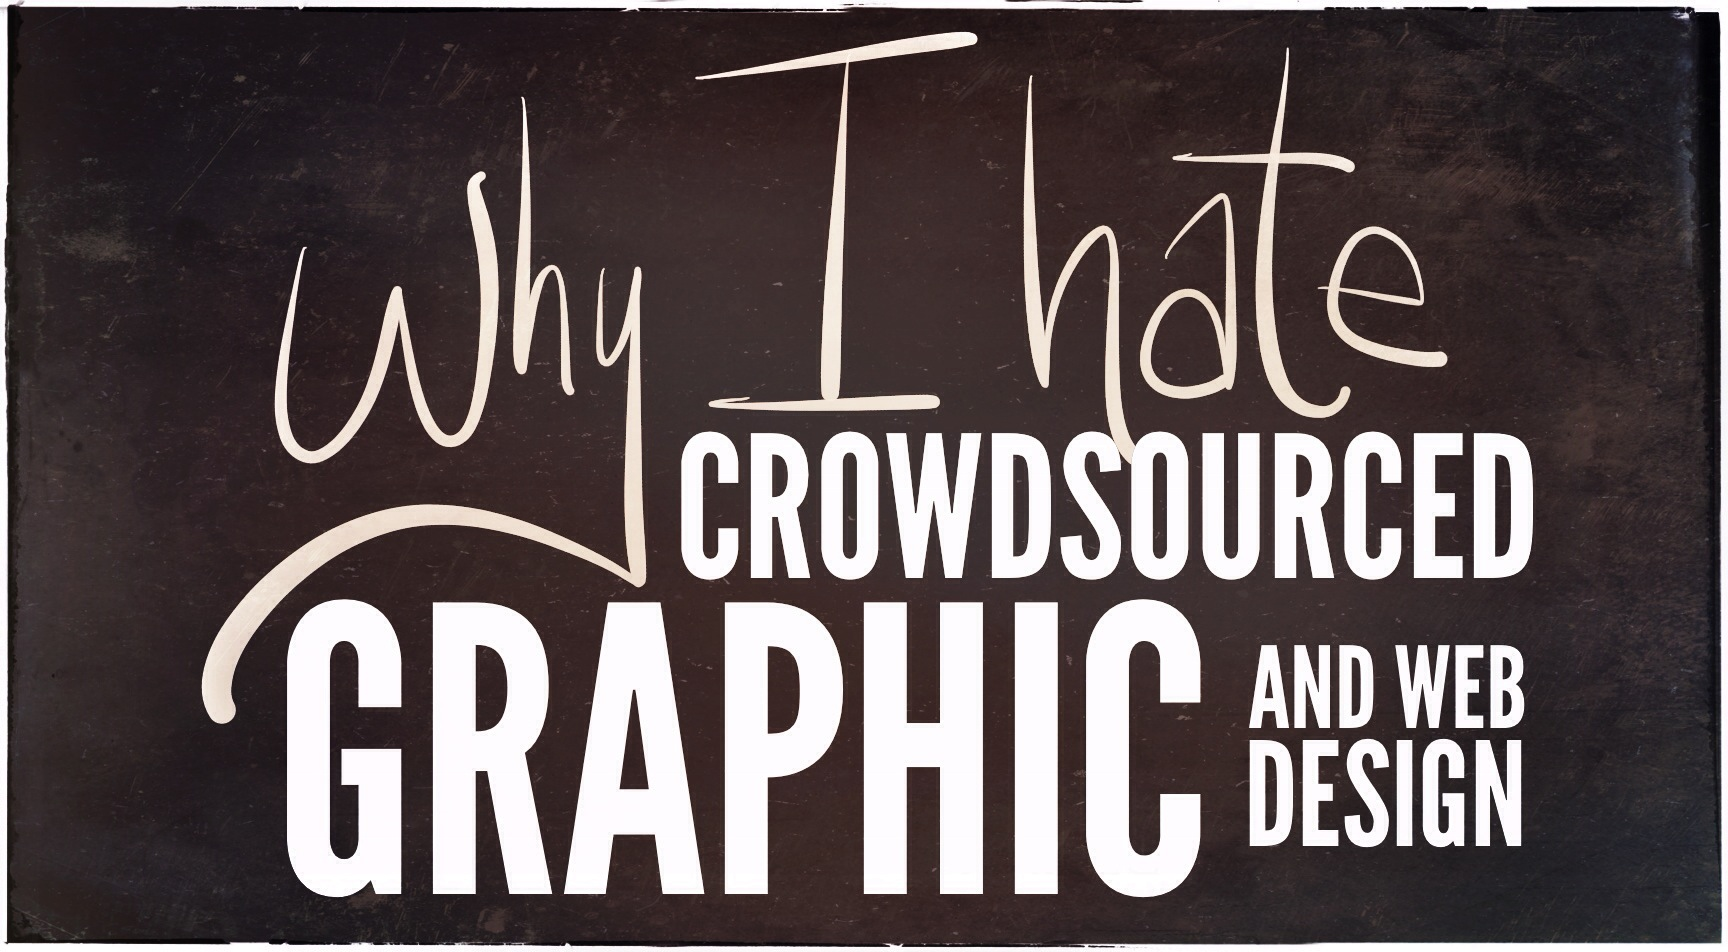 why I hate crowdsourced graphic design